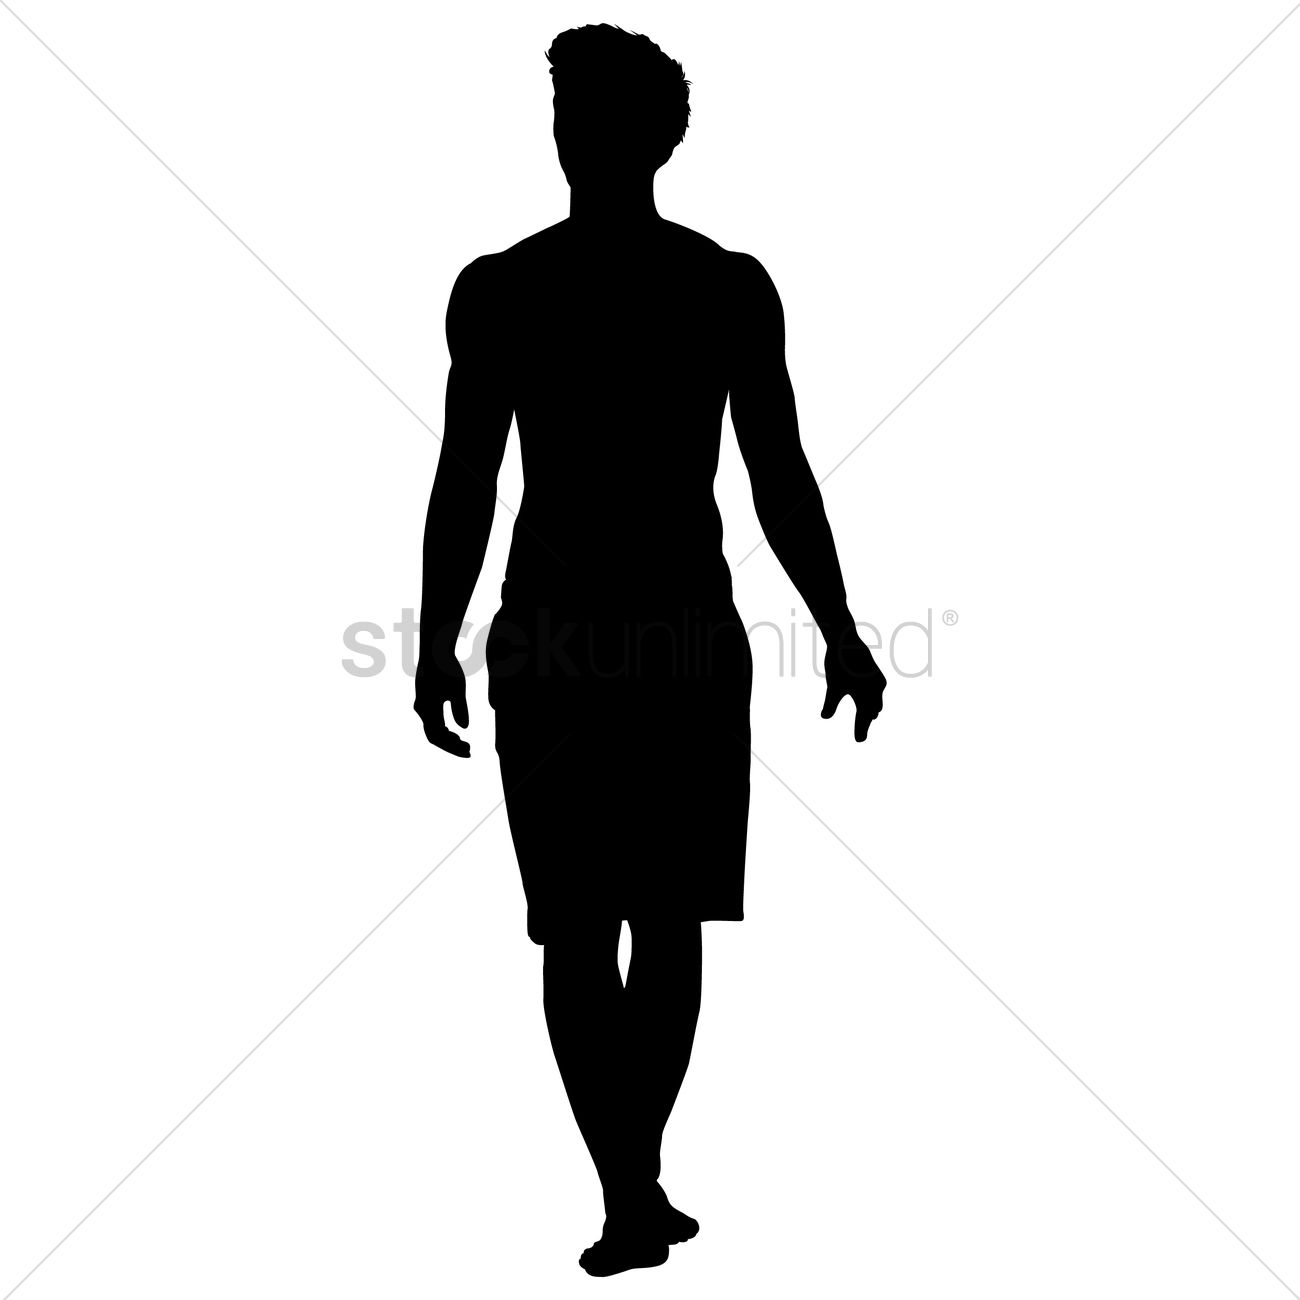 1300x1300 Silhouette Of A Man Standing Vector Image